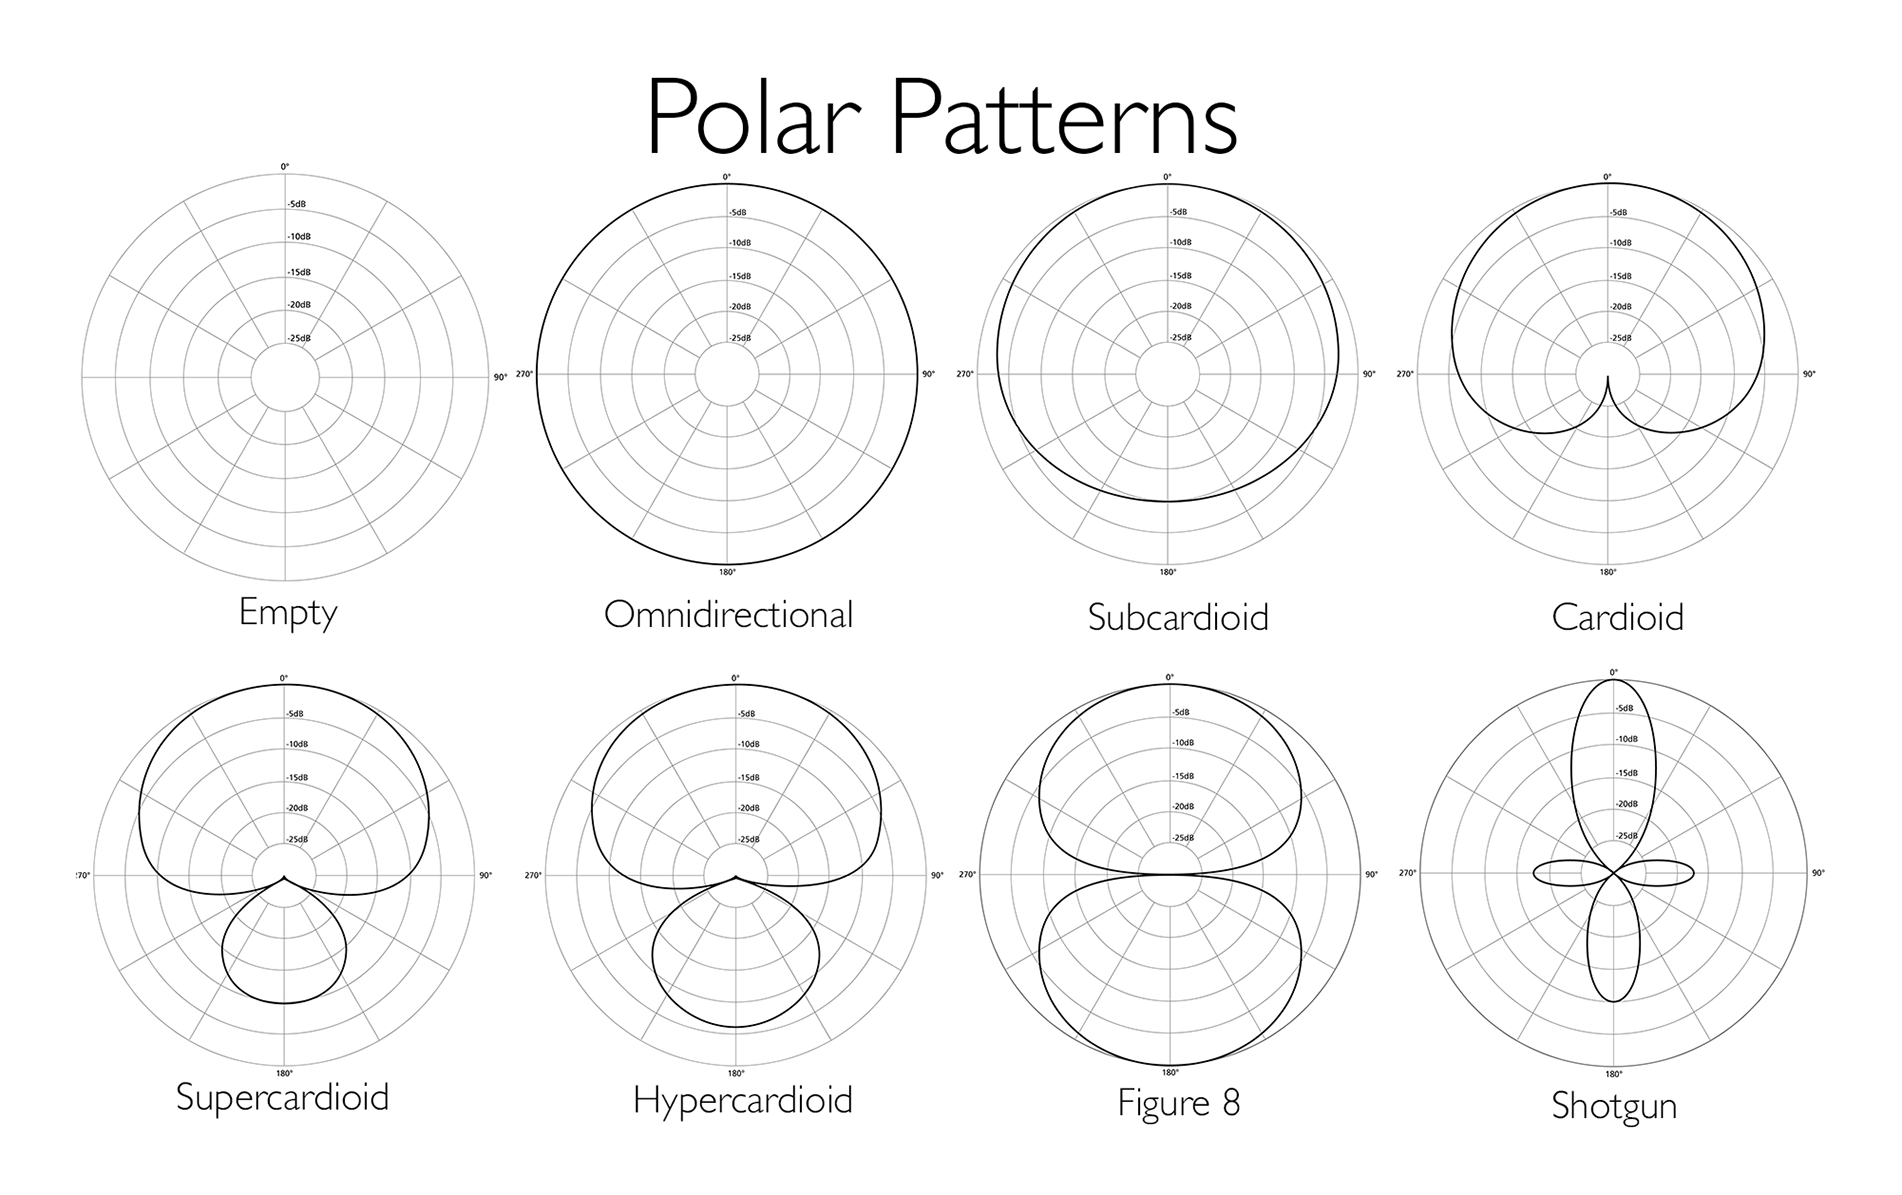 Picture of 8 separate polar patterns on a circular range graph. The image shows how the different kinds of microphones will pick up audio in different shapes, from omni-directional microphones that pick up signal in all directions, to shot gun microphones that have a pointed pick up area.